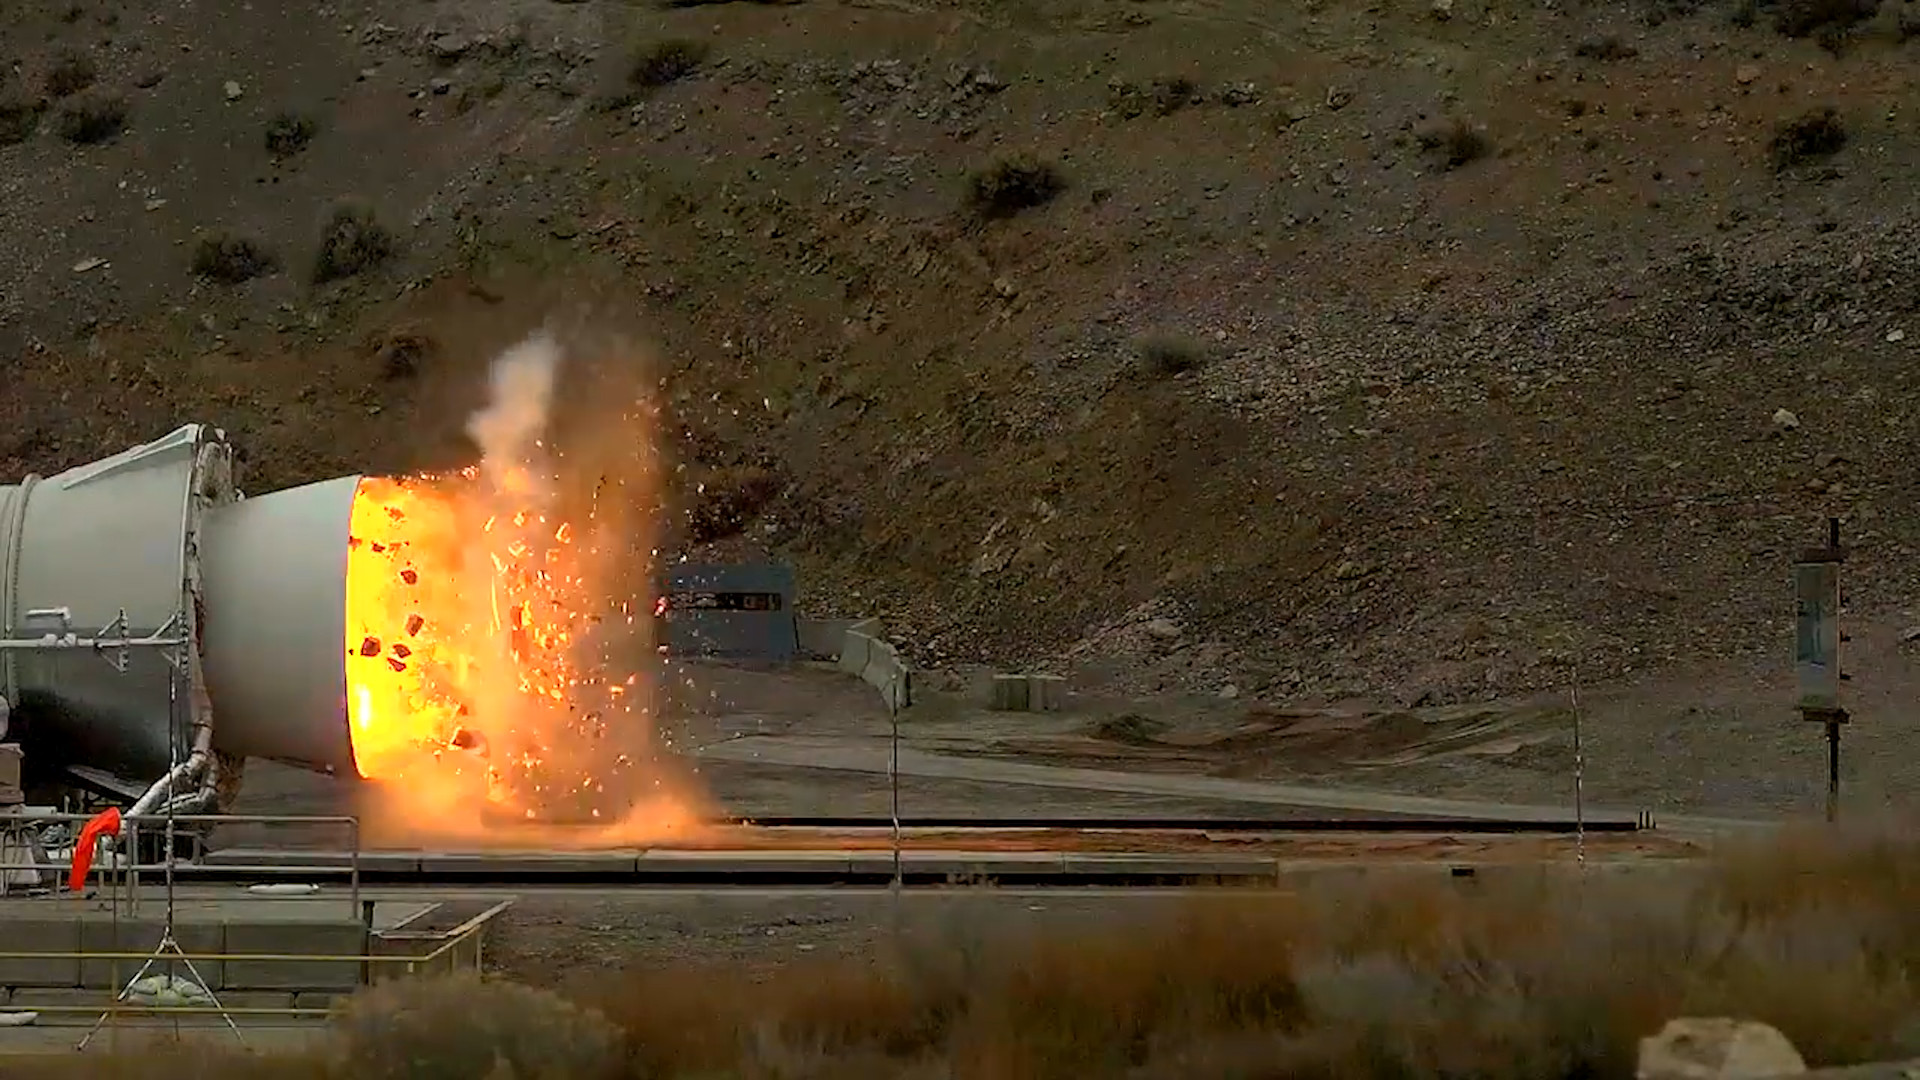 wired_nasa-s-testing-its-biggest-flame-thrower-er-rocket-ever-2